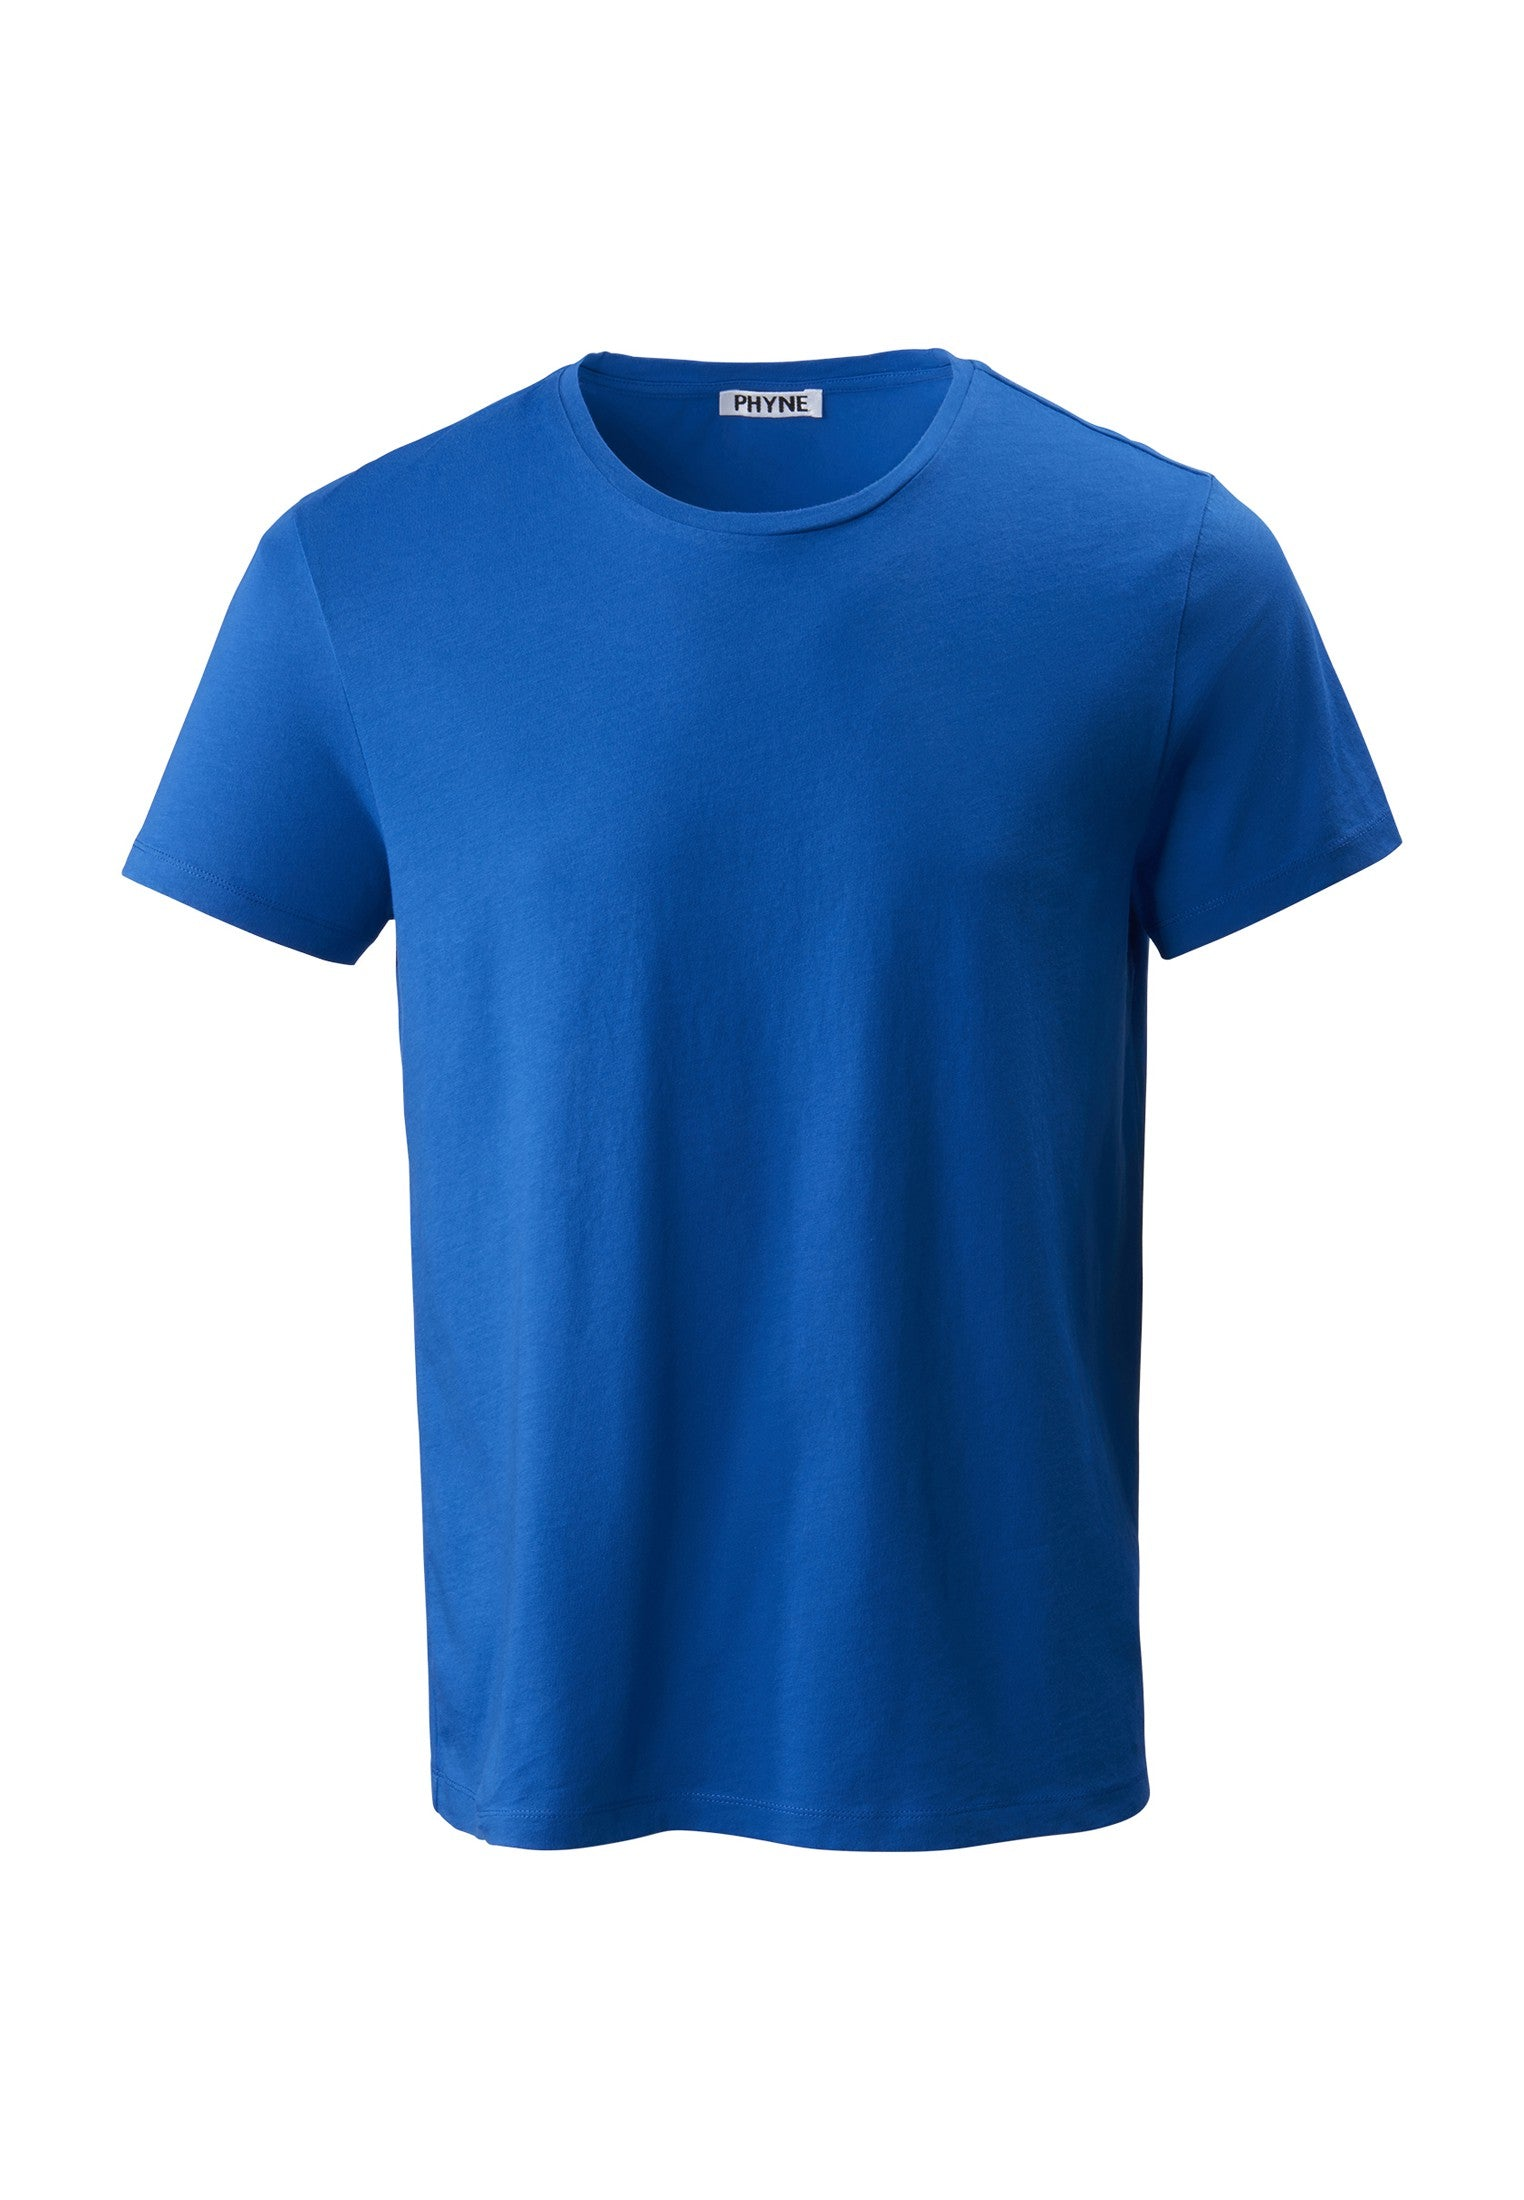 The Round Neck T-Shirt Electric Blue